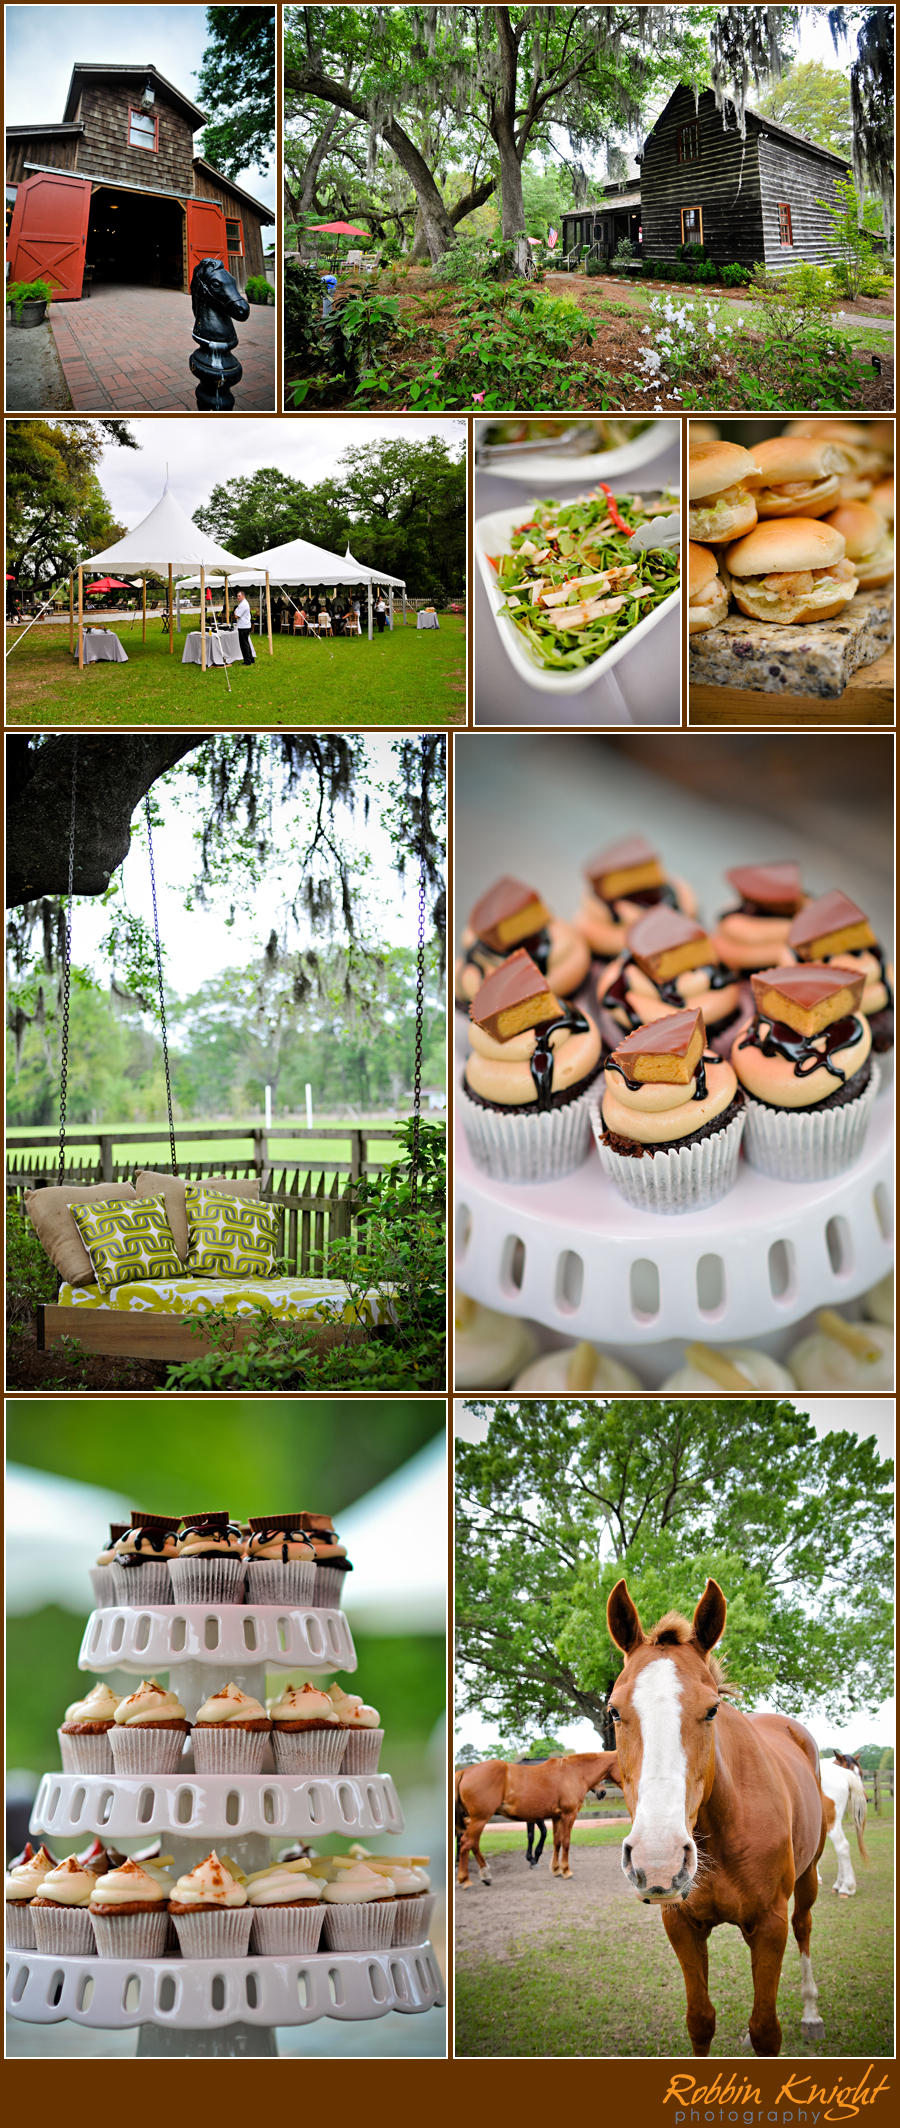 Wedding event at Hyde Park